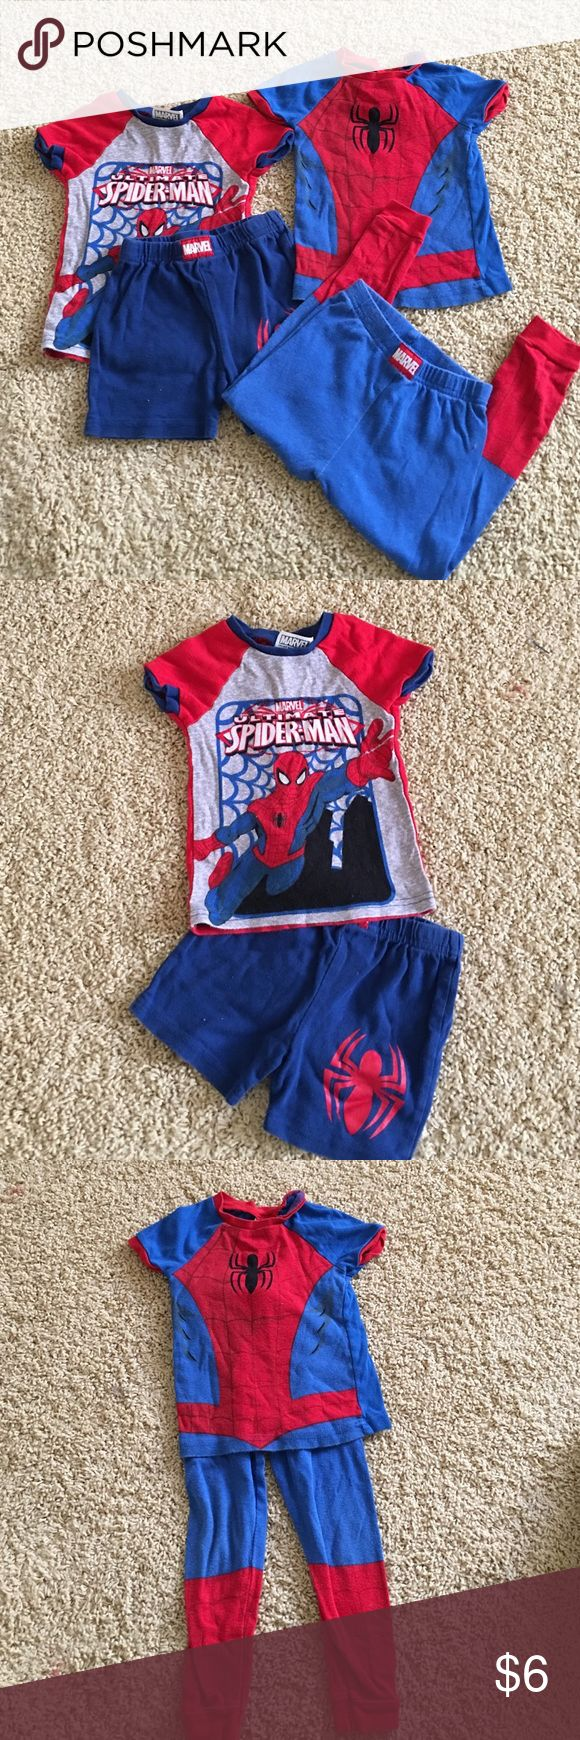 Spider man PJ's size 3T set of 2! Cute spider 🕷 man pjs pajamas! Set of two one with shorts one with pants! Size 3T Marvel Pajamas Pajama Sets